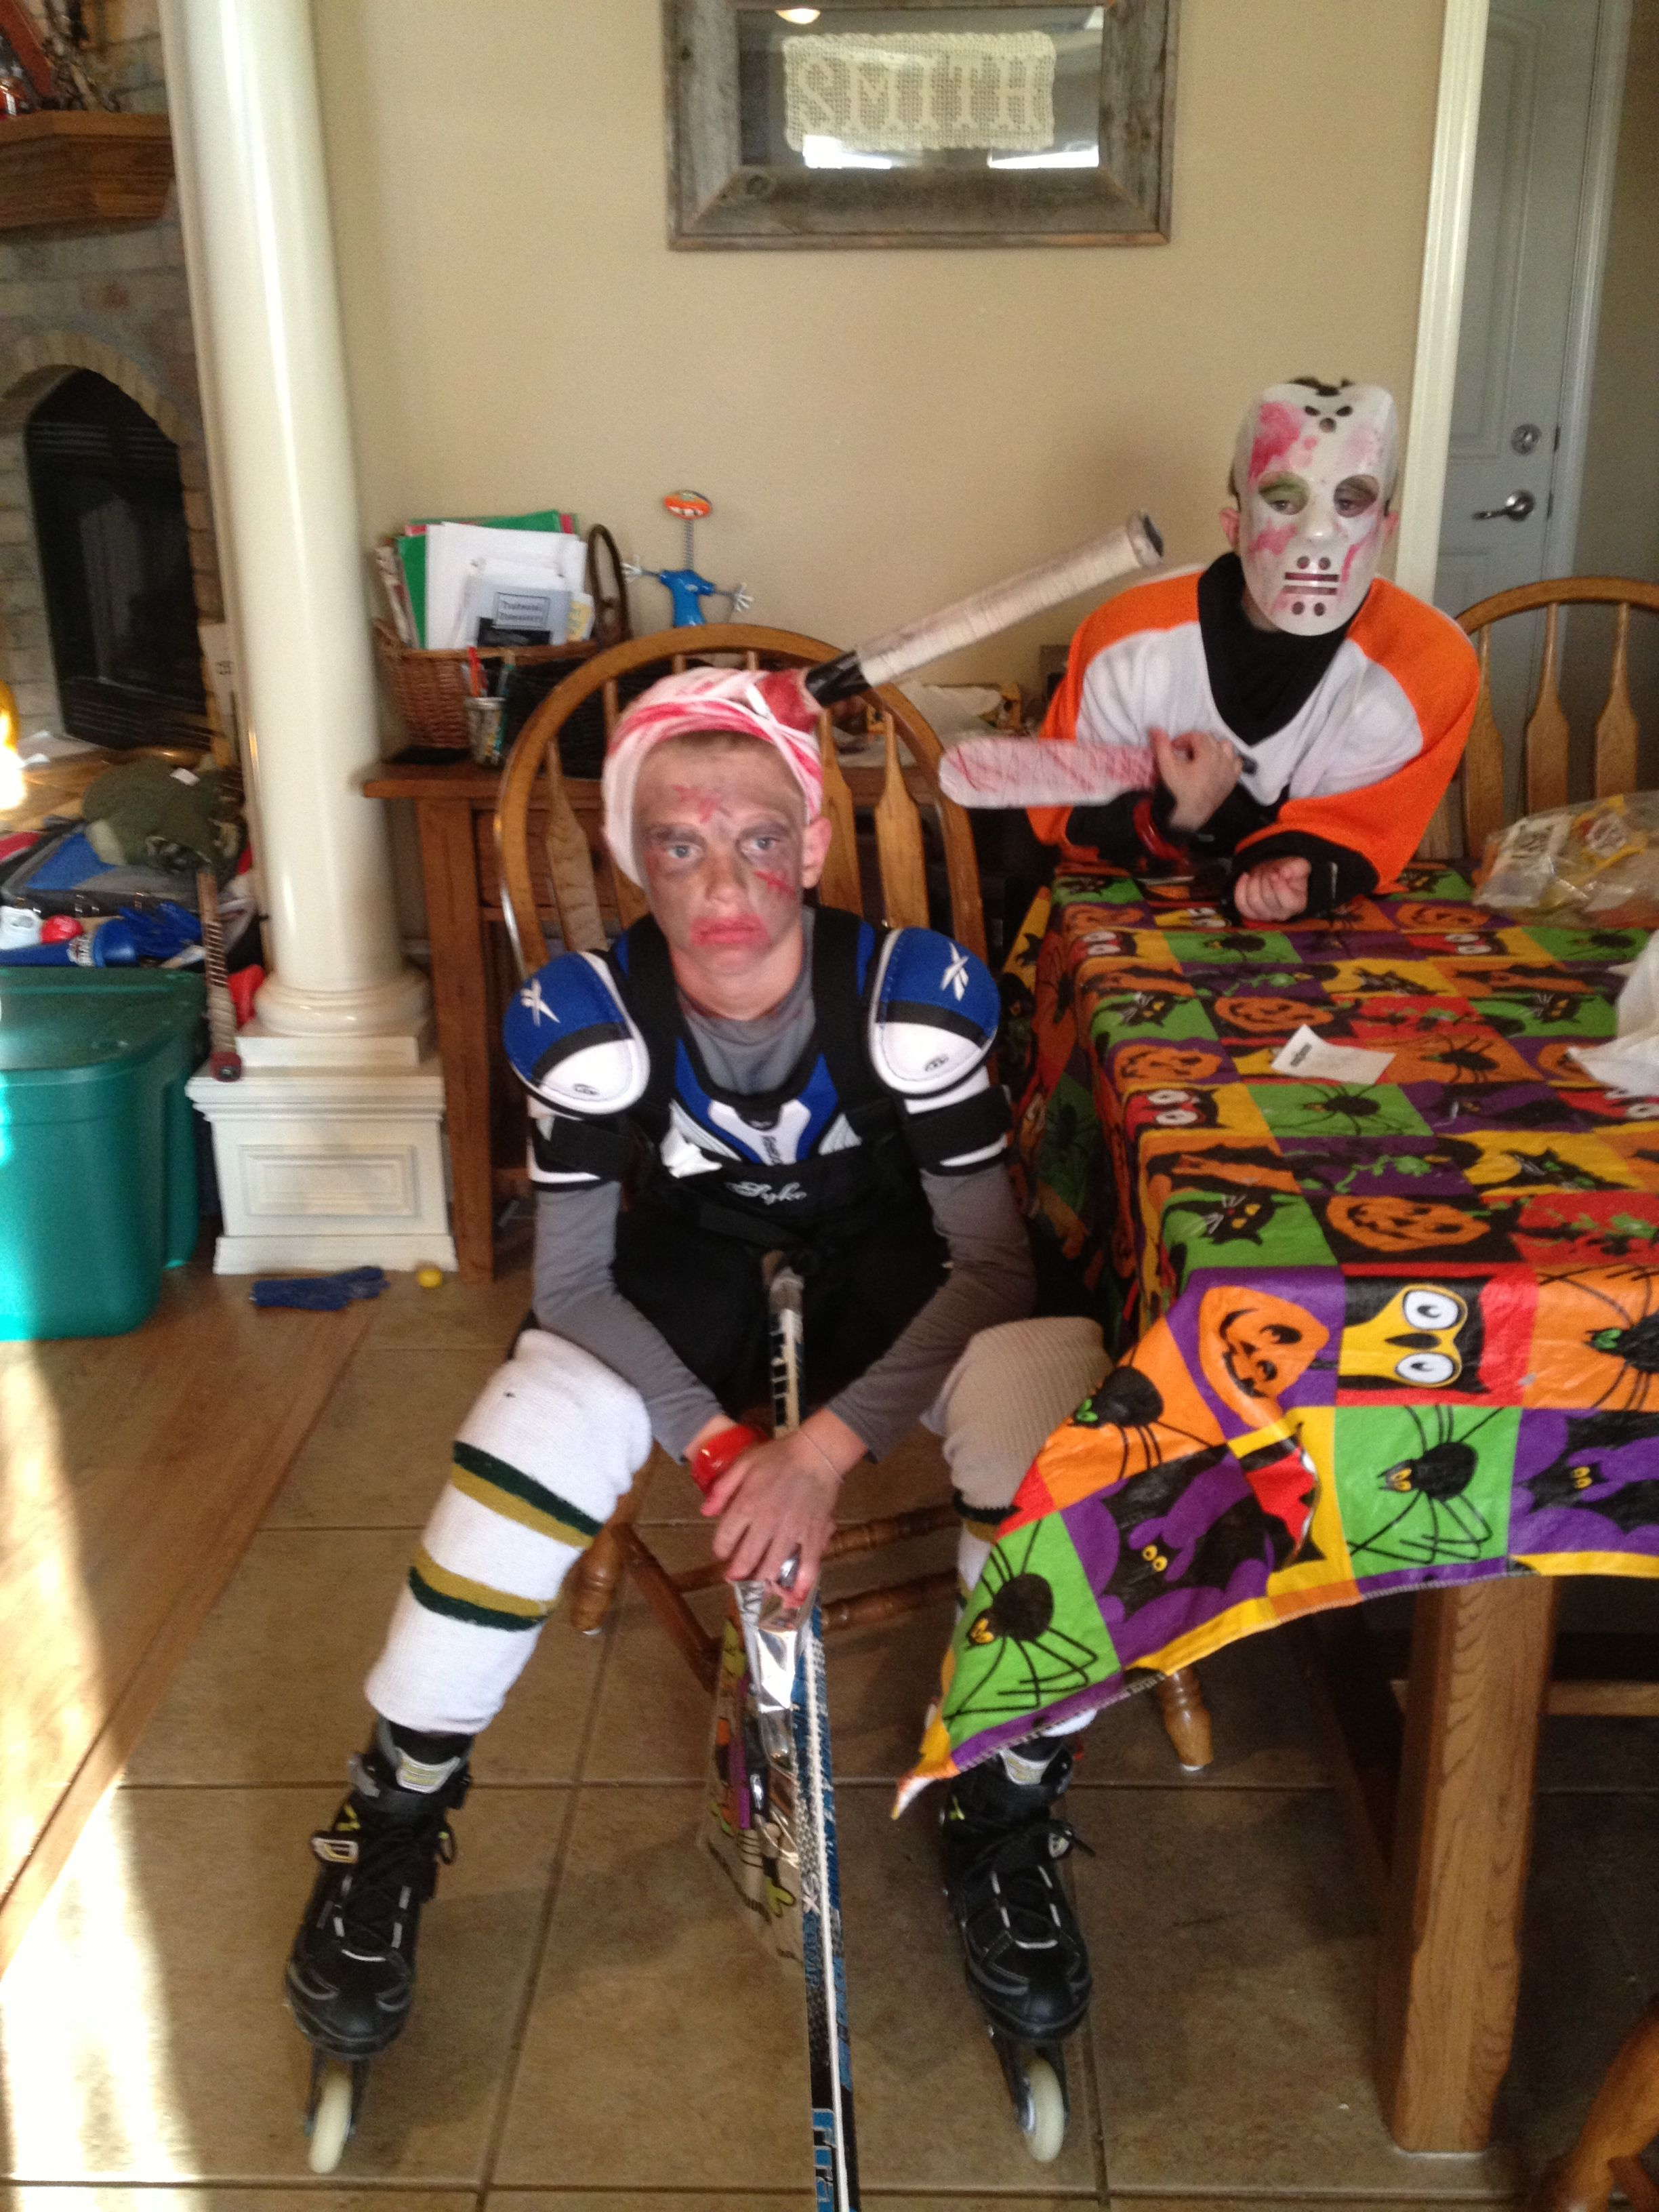 The Boy S Halloween Costumes So Super Easy They Already Play Hockey And Wanted To Be Z Zombie Halloween Costumes Boy Halloween Costumes Hockey Player Costume